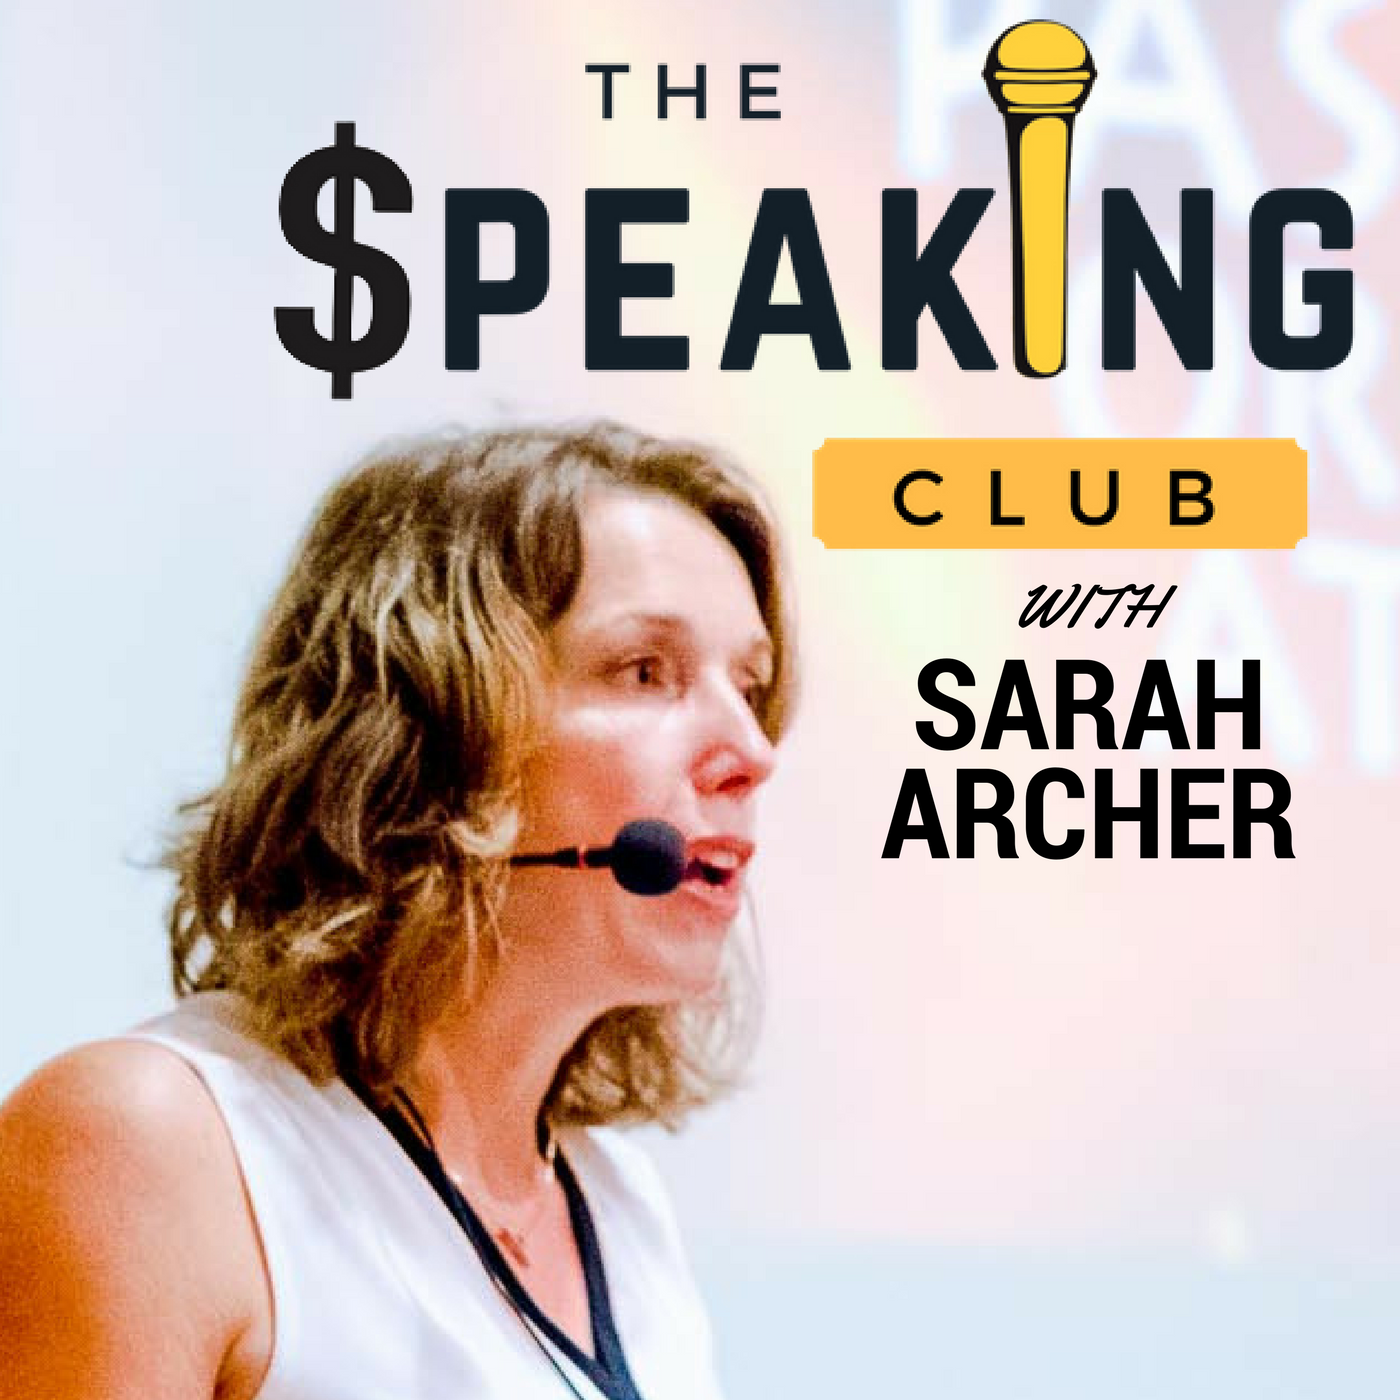 Event Promotion & Increasing Your Odds of Being Booked to Speak - 090